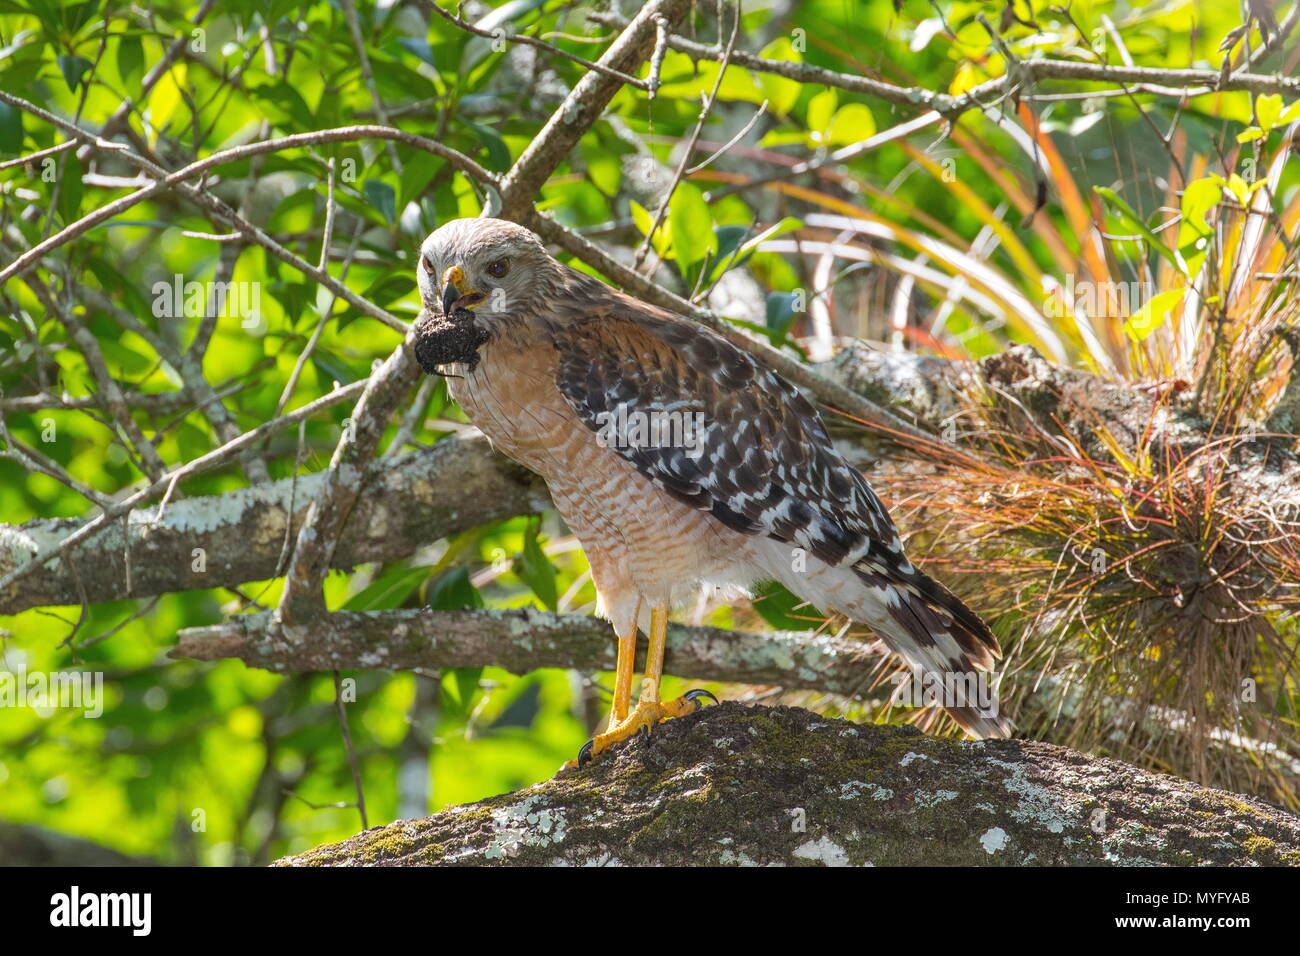 This red-shouldered hawk, Buteo lineatus, eating a Florida snapping turtle, Chelydra serpentina oceola. - Stock Image